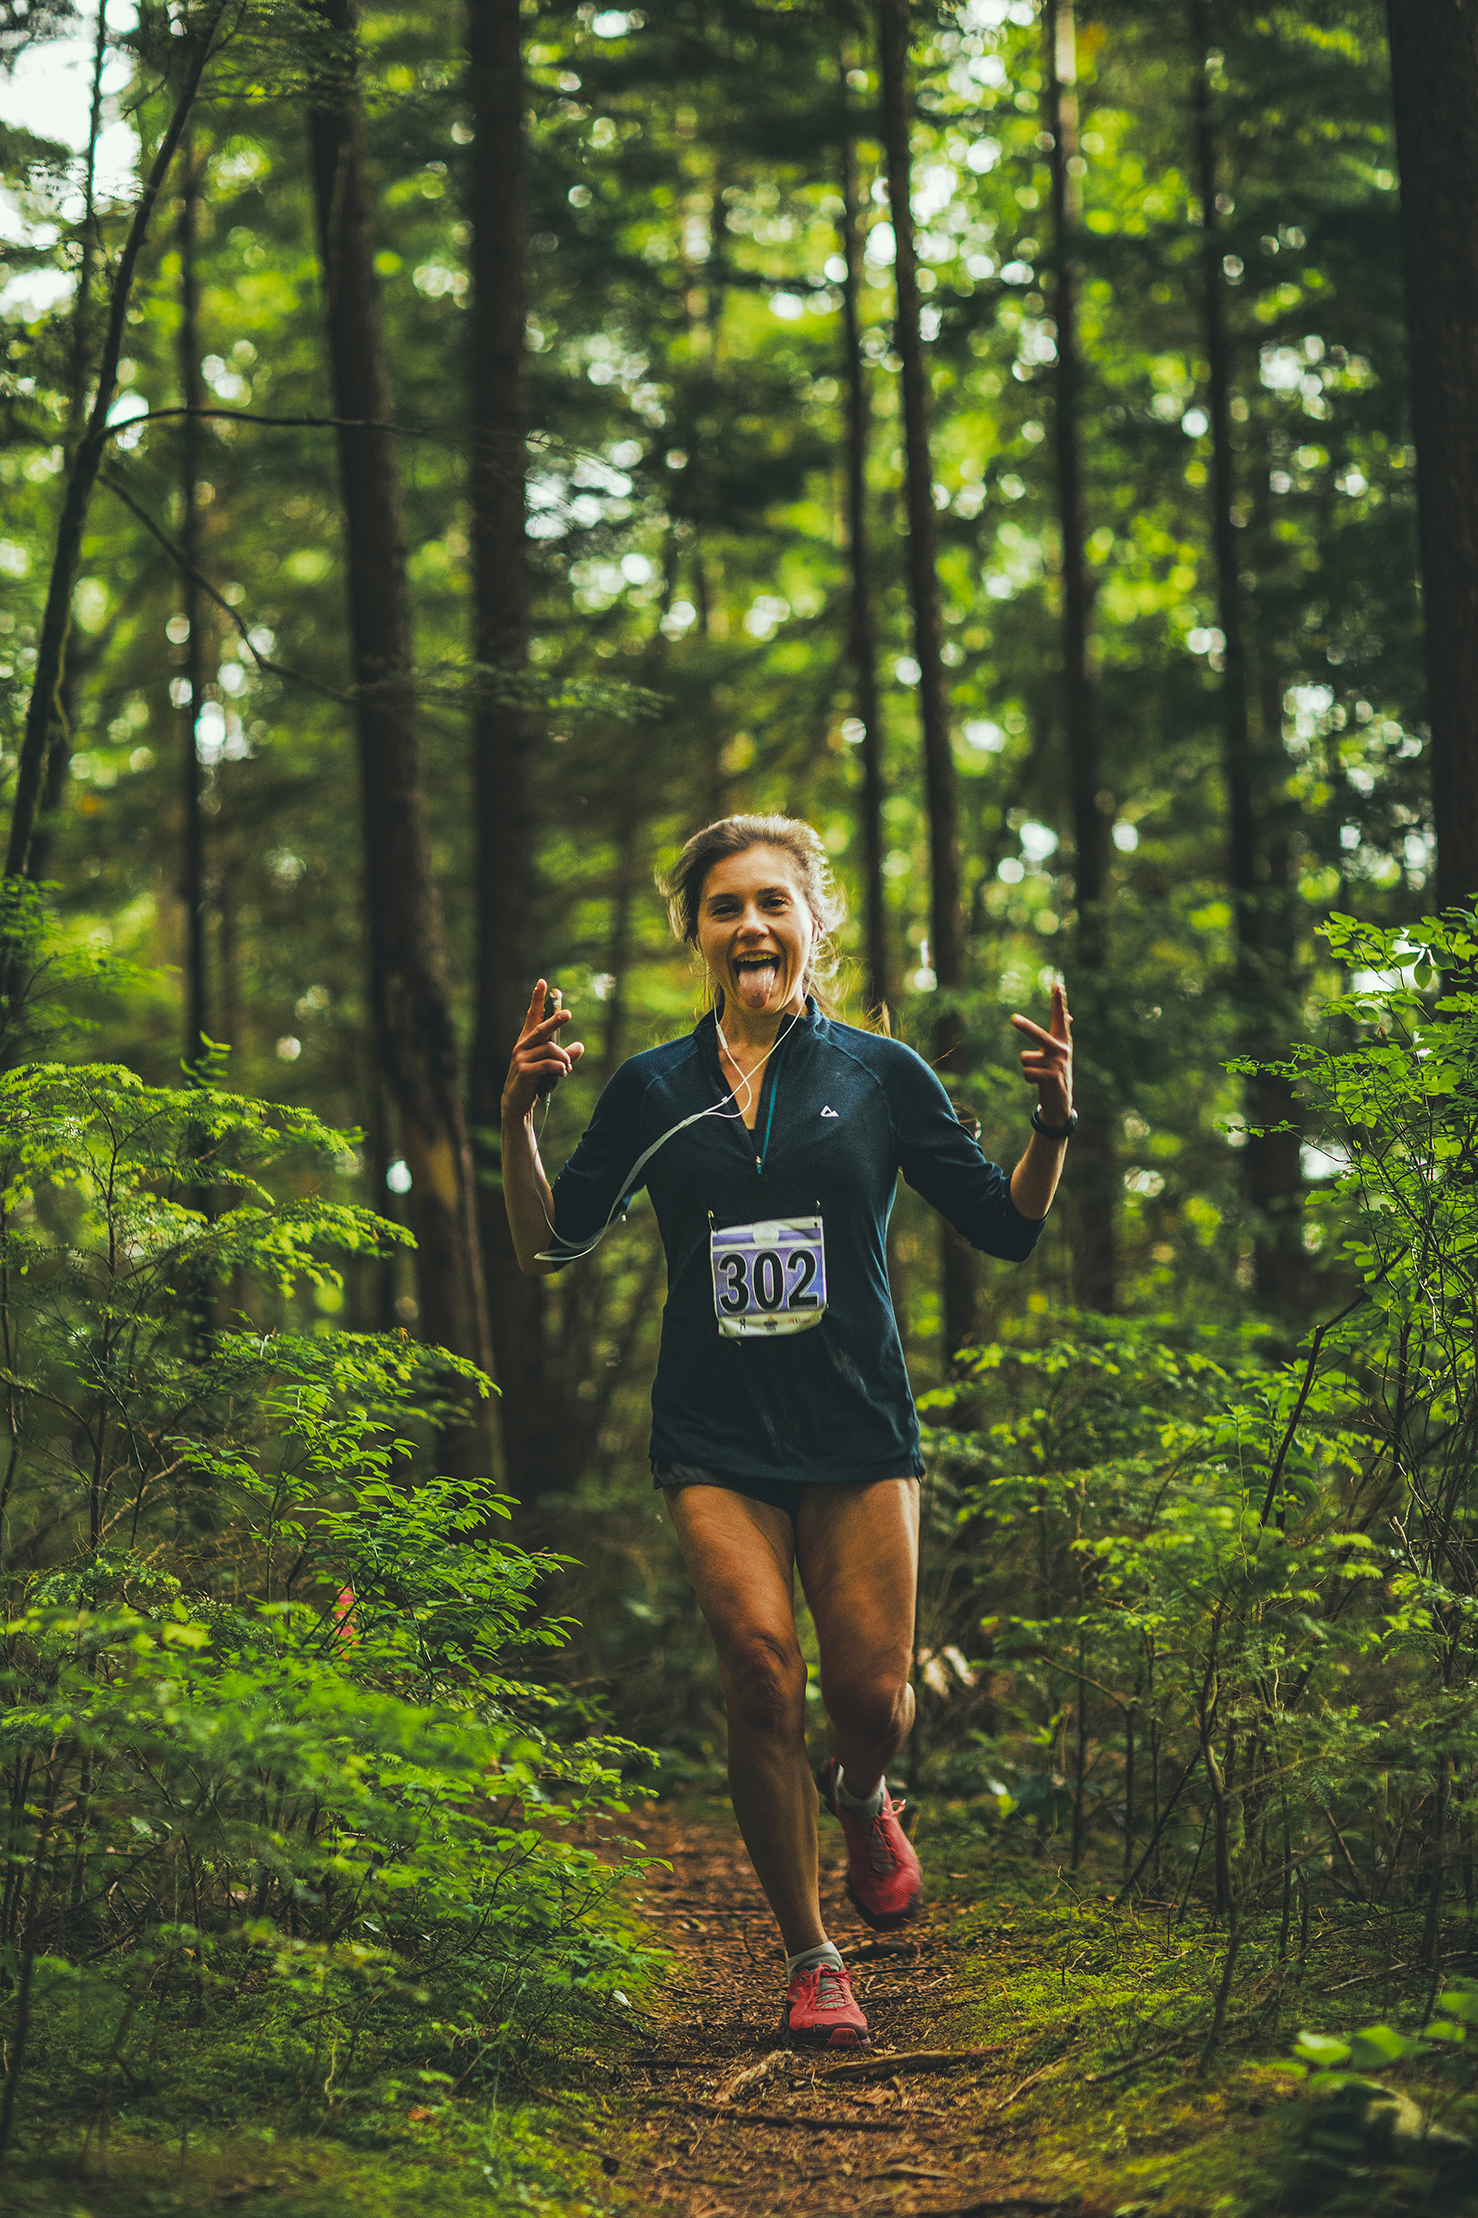 Fraser Valley Trail Races - Bear Mountain - IMG_2169 by Brice Ferre Studio - Vancouver Portrait Adventure and Athlete Photographer.jpg